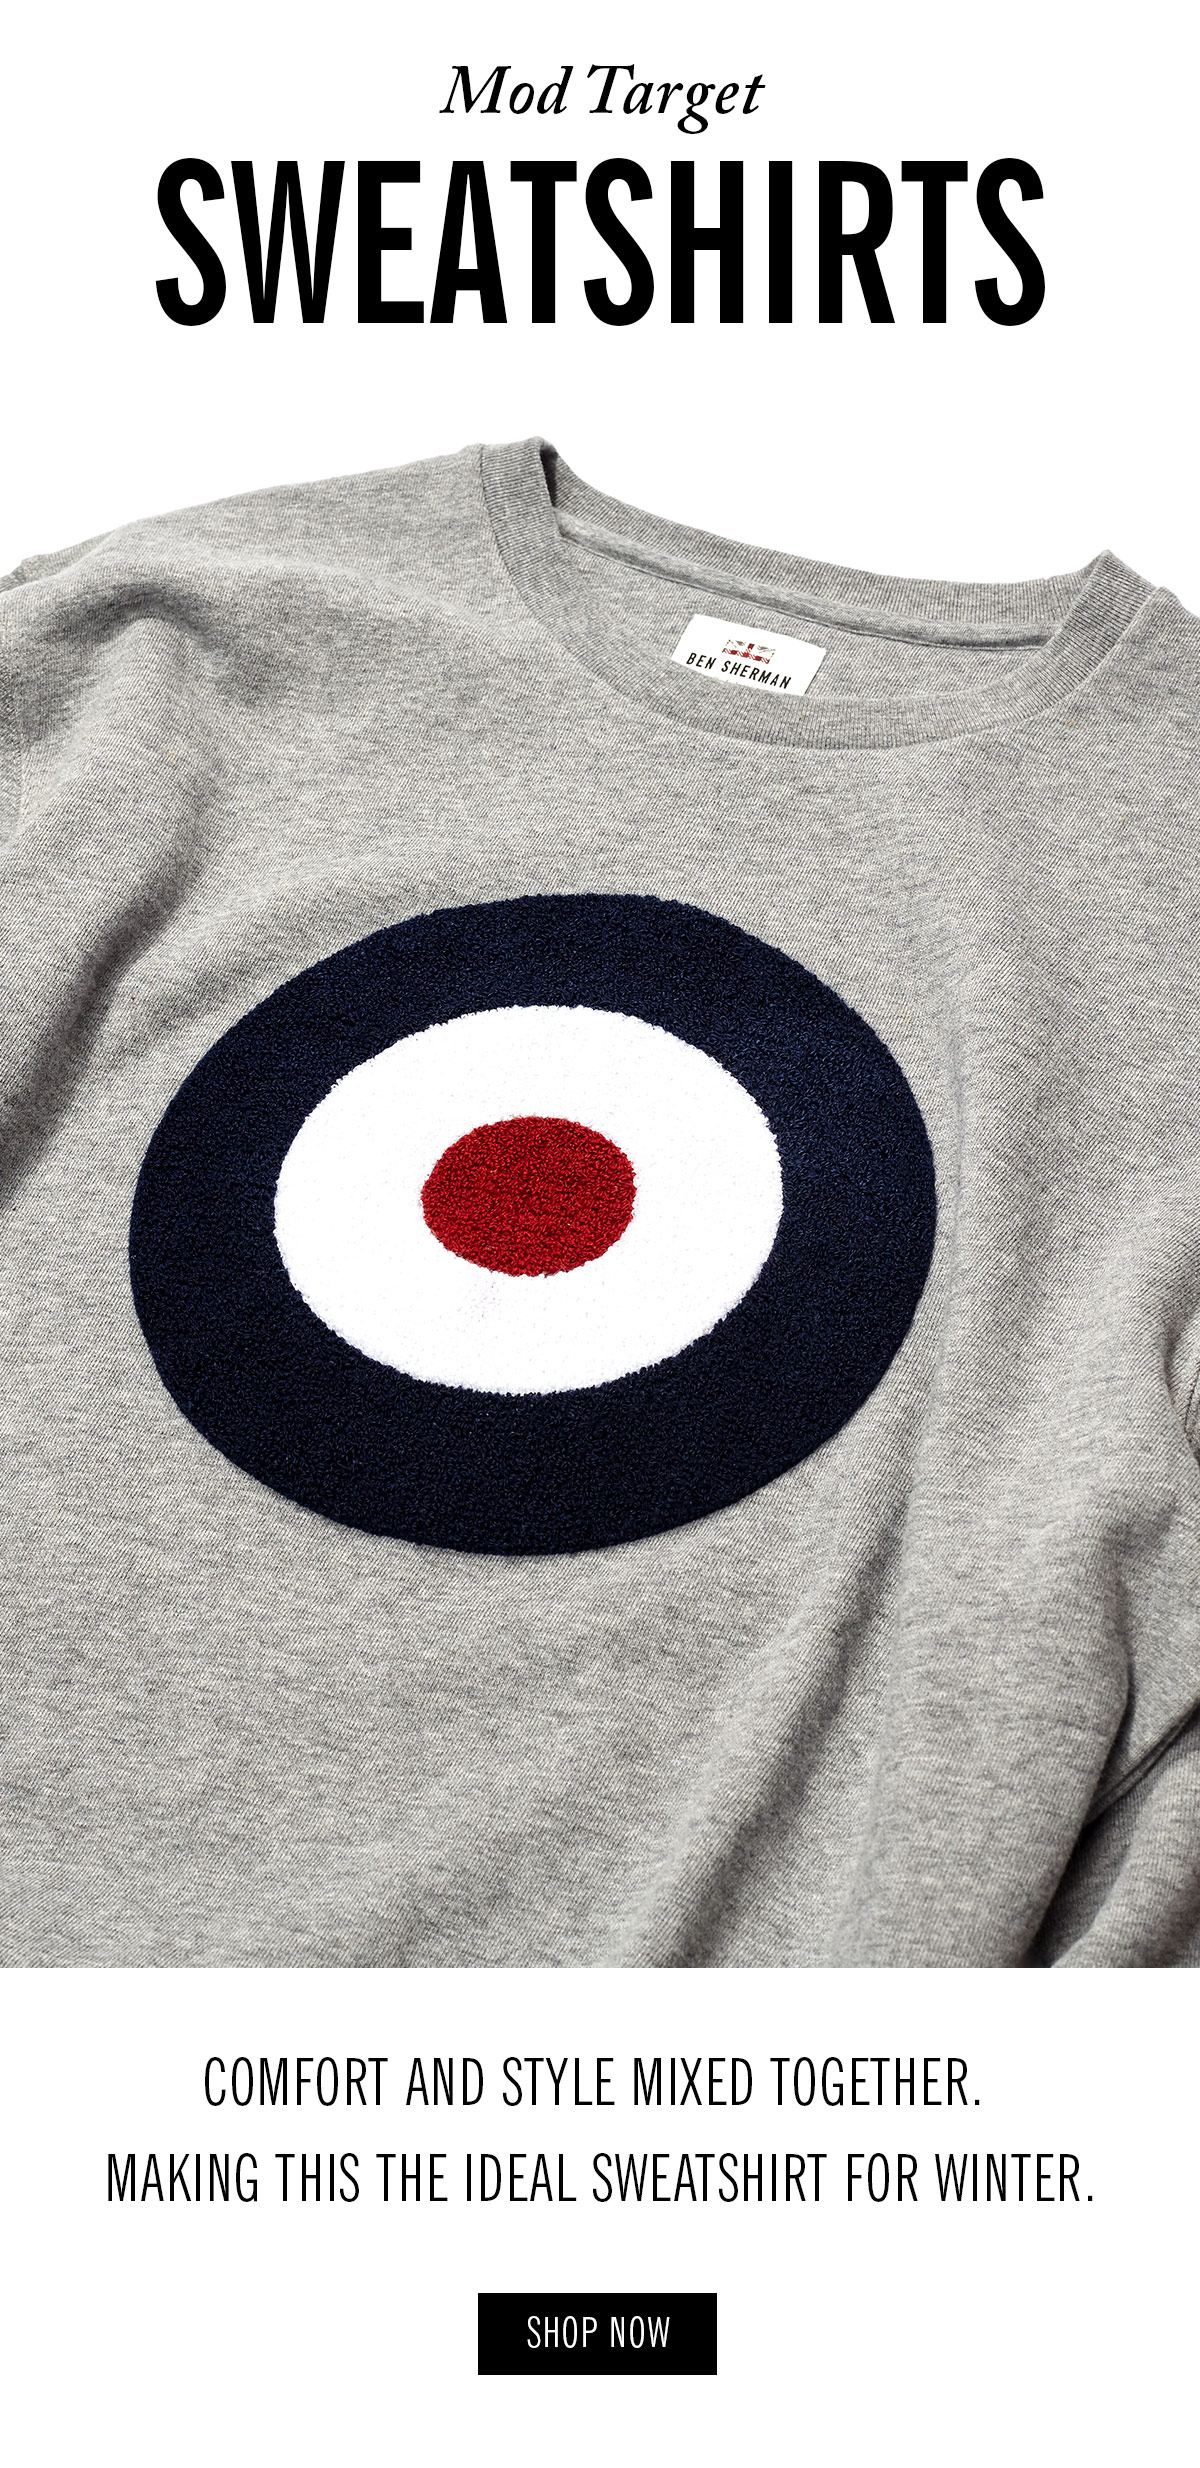 Mod Target Sweatshirts | Photo of a grey sweatshirt with a red/white/blue target print | Comfort and style mixed together. Making this the ideal sweatshirt for winter. | Shop Now